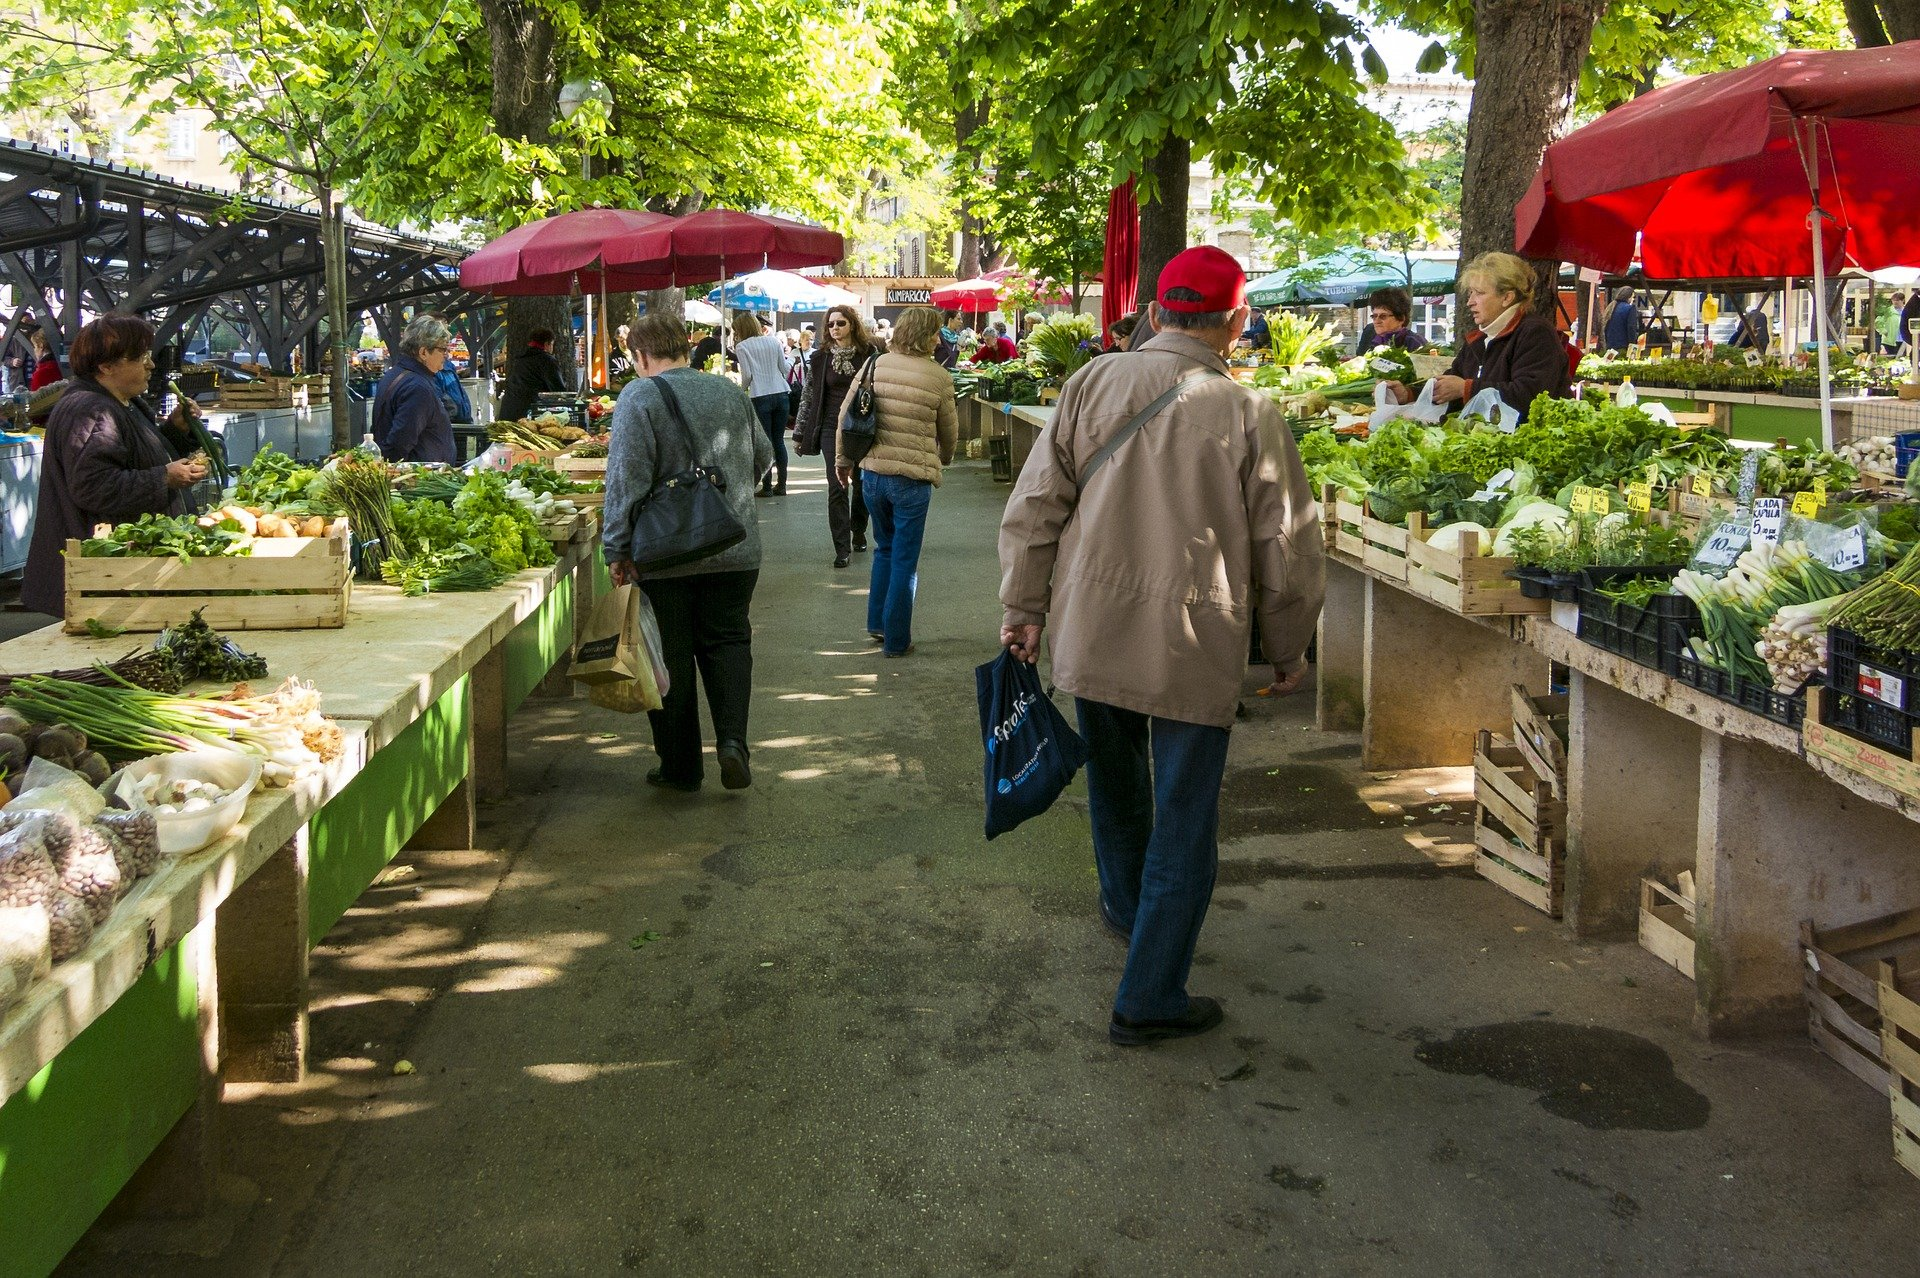 The Generalitat De Catalunya Asks The City Councils To Keep Open-air Markets Open